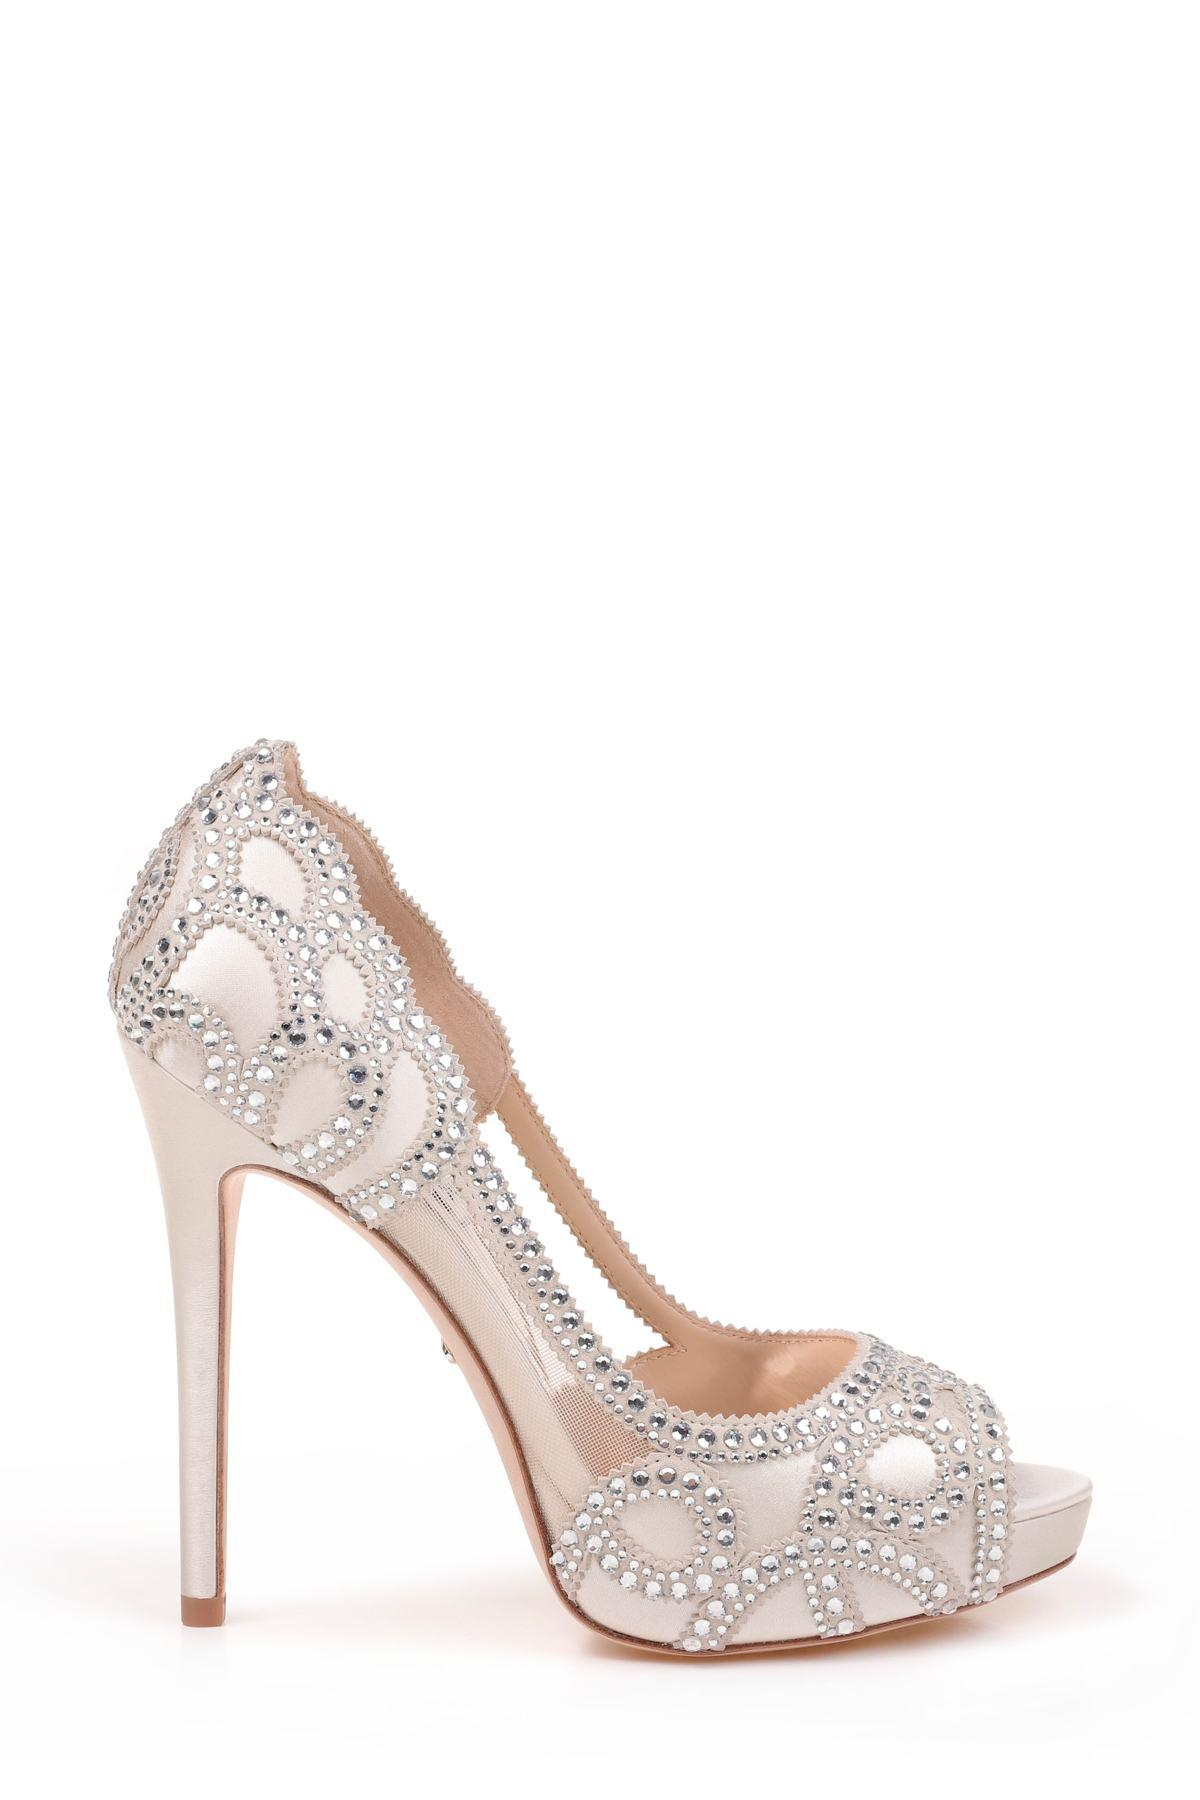 e5cb8c18e38 ... Multicolor Witney Embellished Peep Toe Pump - Lyst. View fullscreen